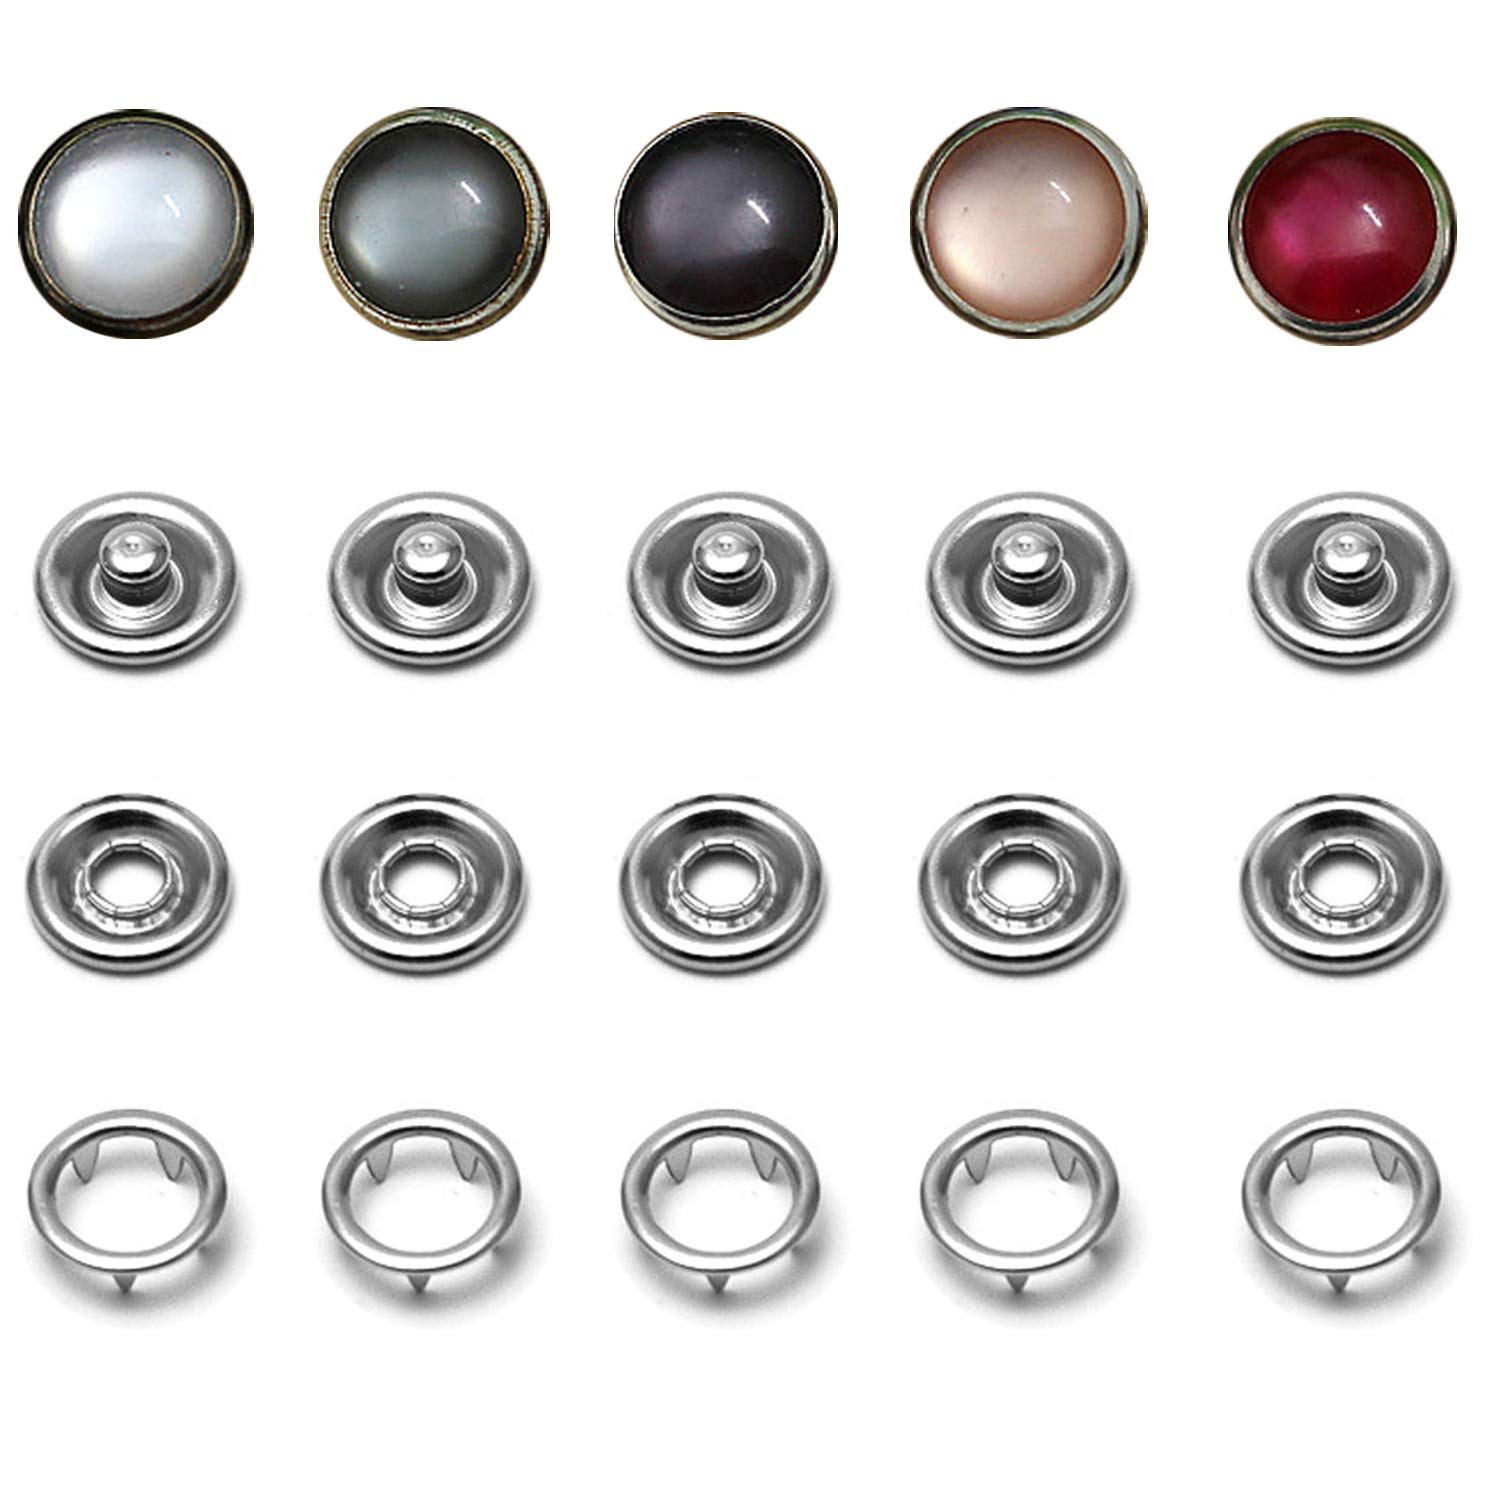 Snap Fastener Kit, 50 Sets Classic Pearl Prong Ring Snaps for Western Shirt Clothes Popper Studs with Clear Storage Box (5 Color x 10 Sets) by Ouhong